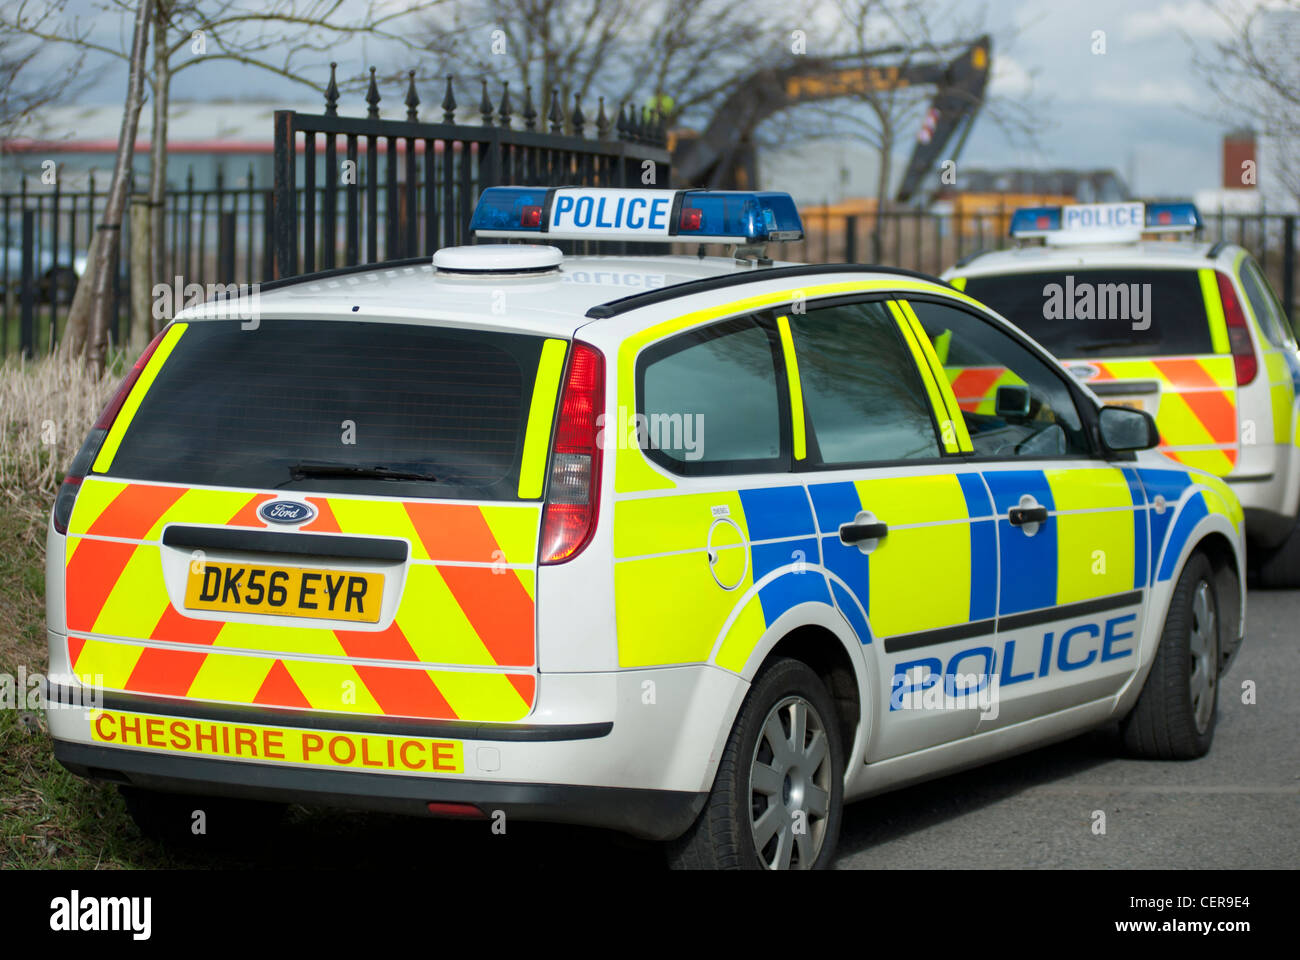 uk police car at the scene of a civil disturbance stock. Black Bedroom Furniture Sets. Home Design Ideas